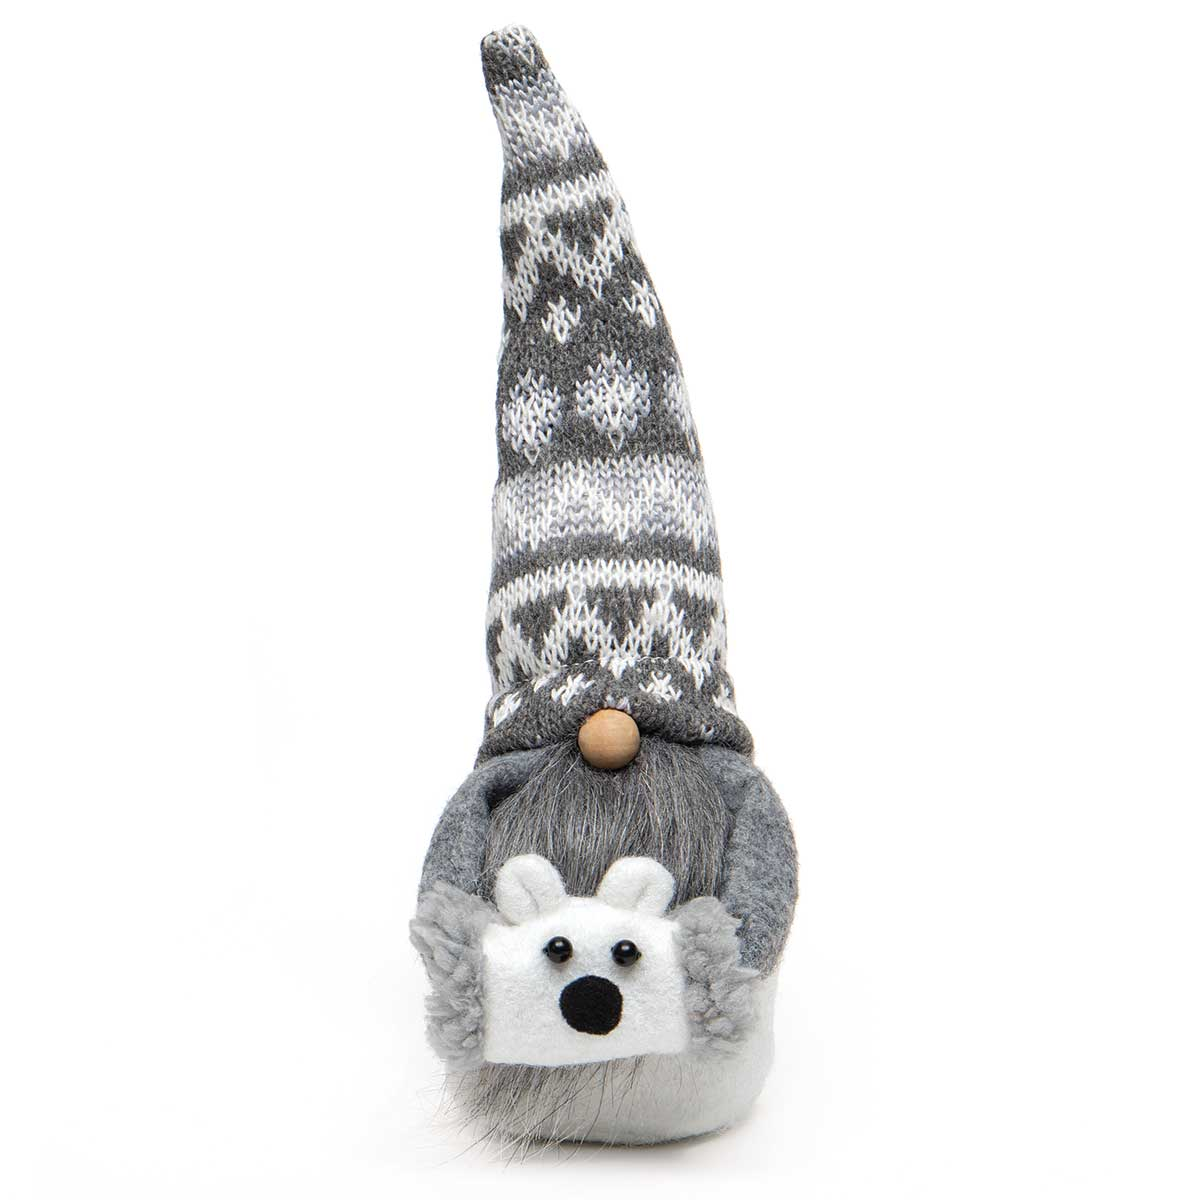 POLI BEAR GNOME ORNAMENT GREY/WHITE WITH WIRED